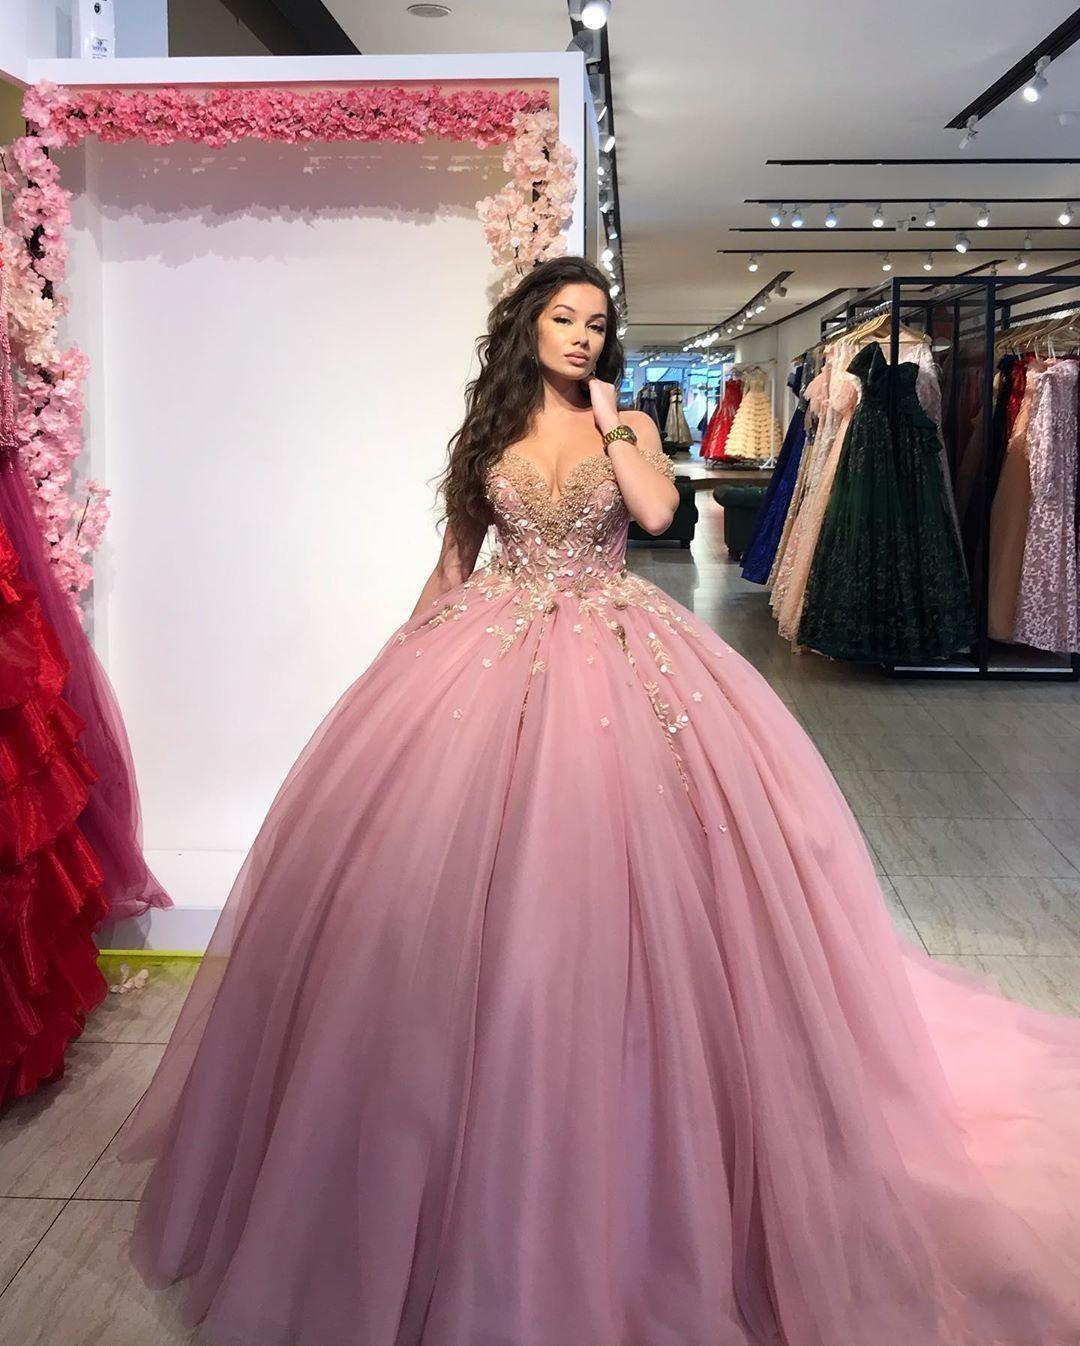 2021 Sexy Arabic Evening Dresses Wear Off Shoulder Tulle Crystal Beaded Flowers Ball Gown Prom Quinceanera Dresses Cheap Formal Party Gowns